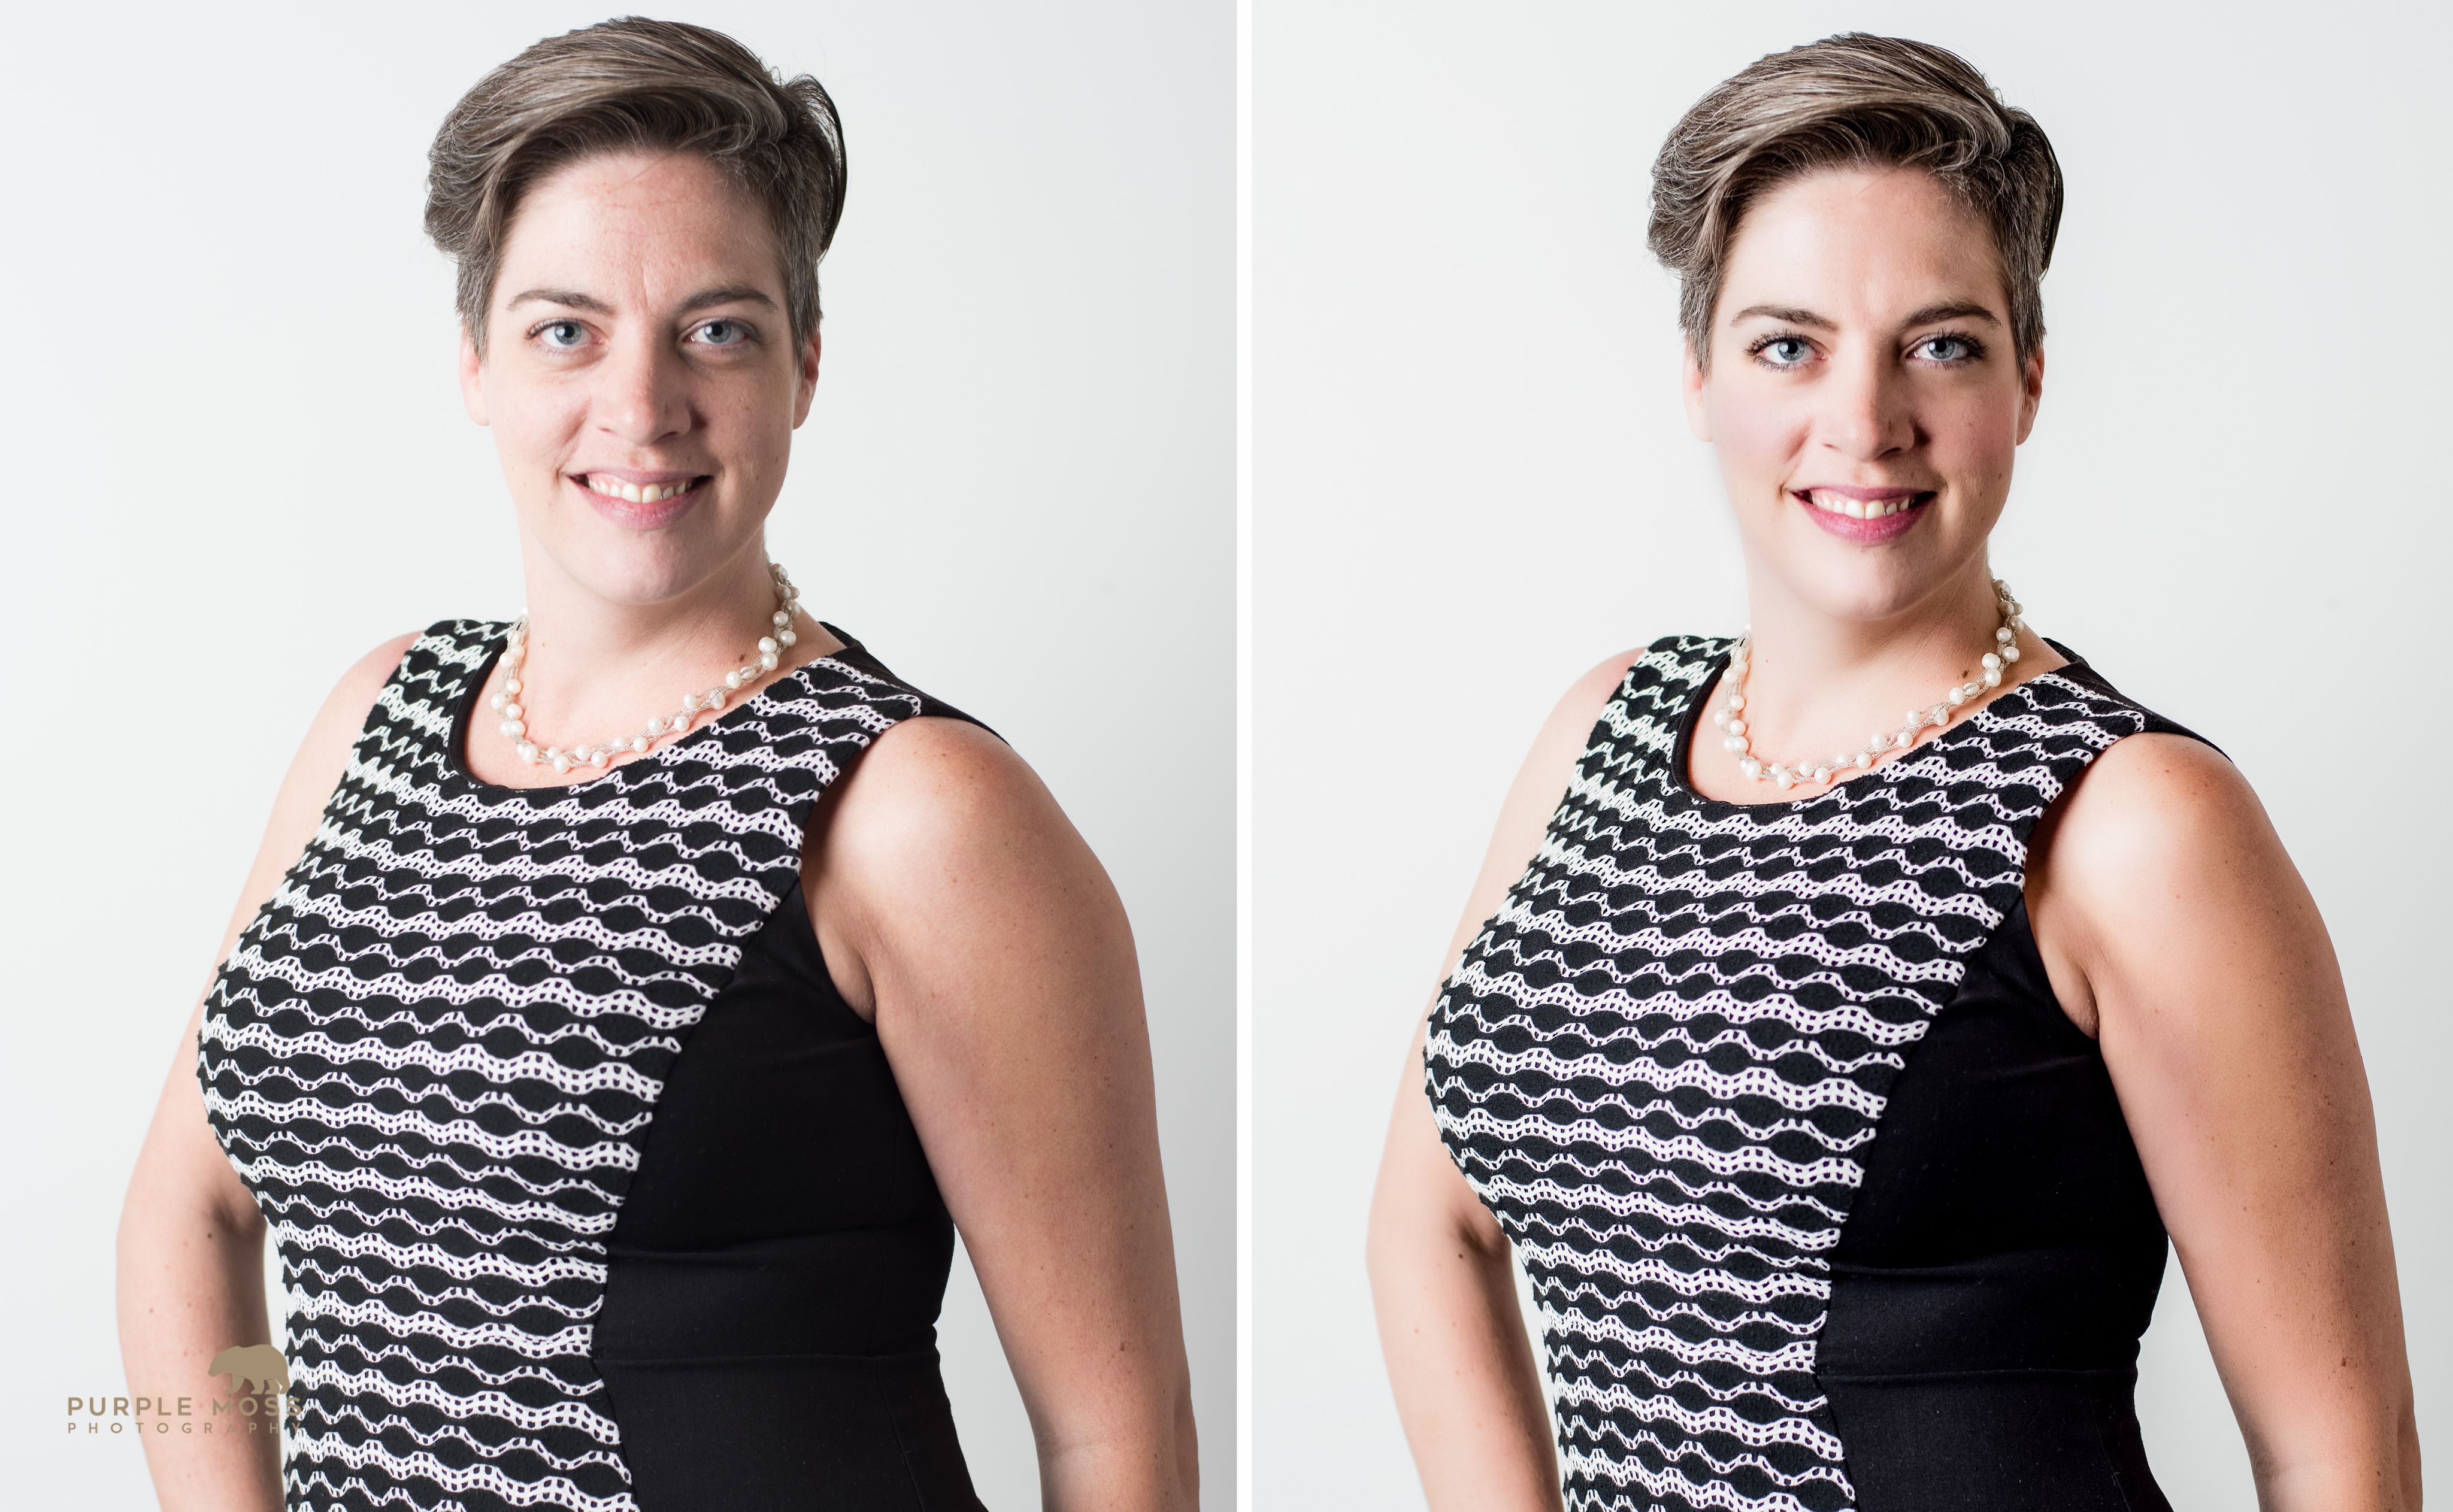 Before and After Women's Headshot | Creative Portrait Ideas | Fun Business Photos | Custom Marketing Images | Utah Portrait Photography | Business Professionals | Dress to Impress | What to Wear for Headshots | Out of the Box | Salt Lake City | Utah | Small Business Marketing Ideas | LinkedIn Profile Pictures | Purple Moss Photography | SLC